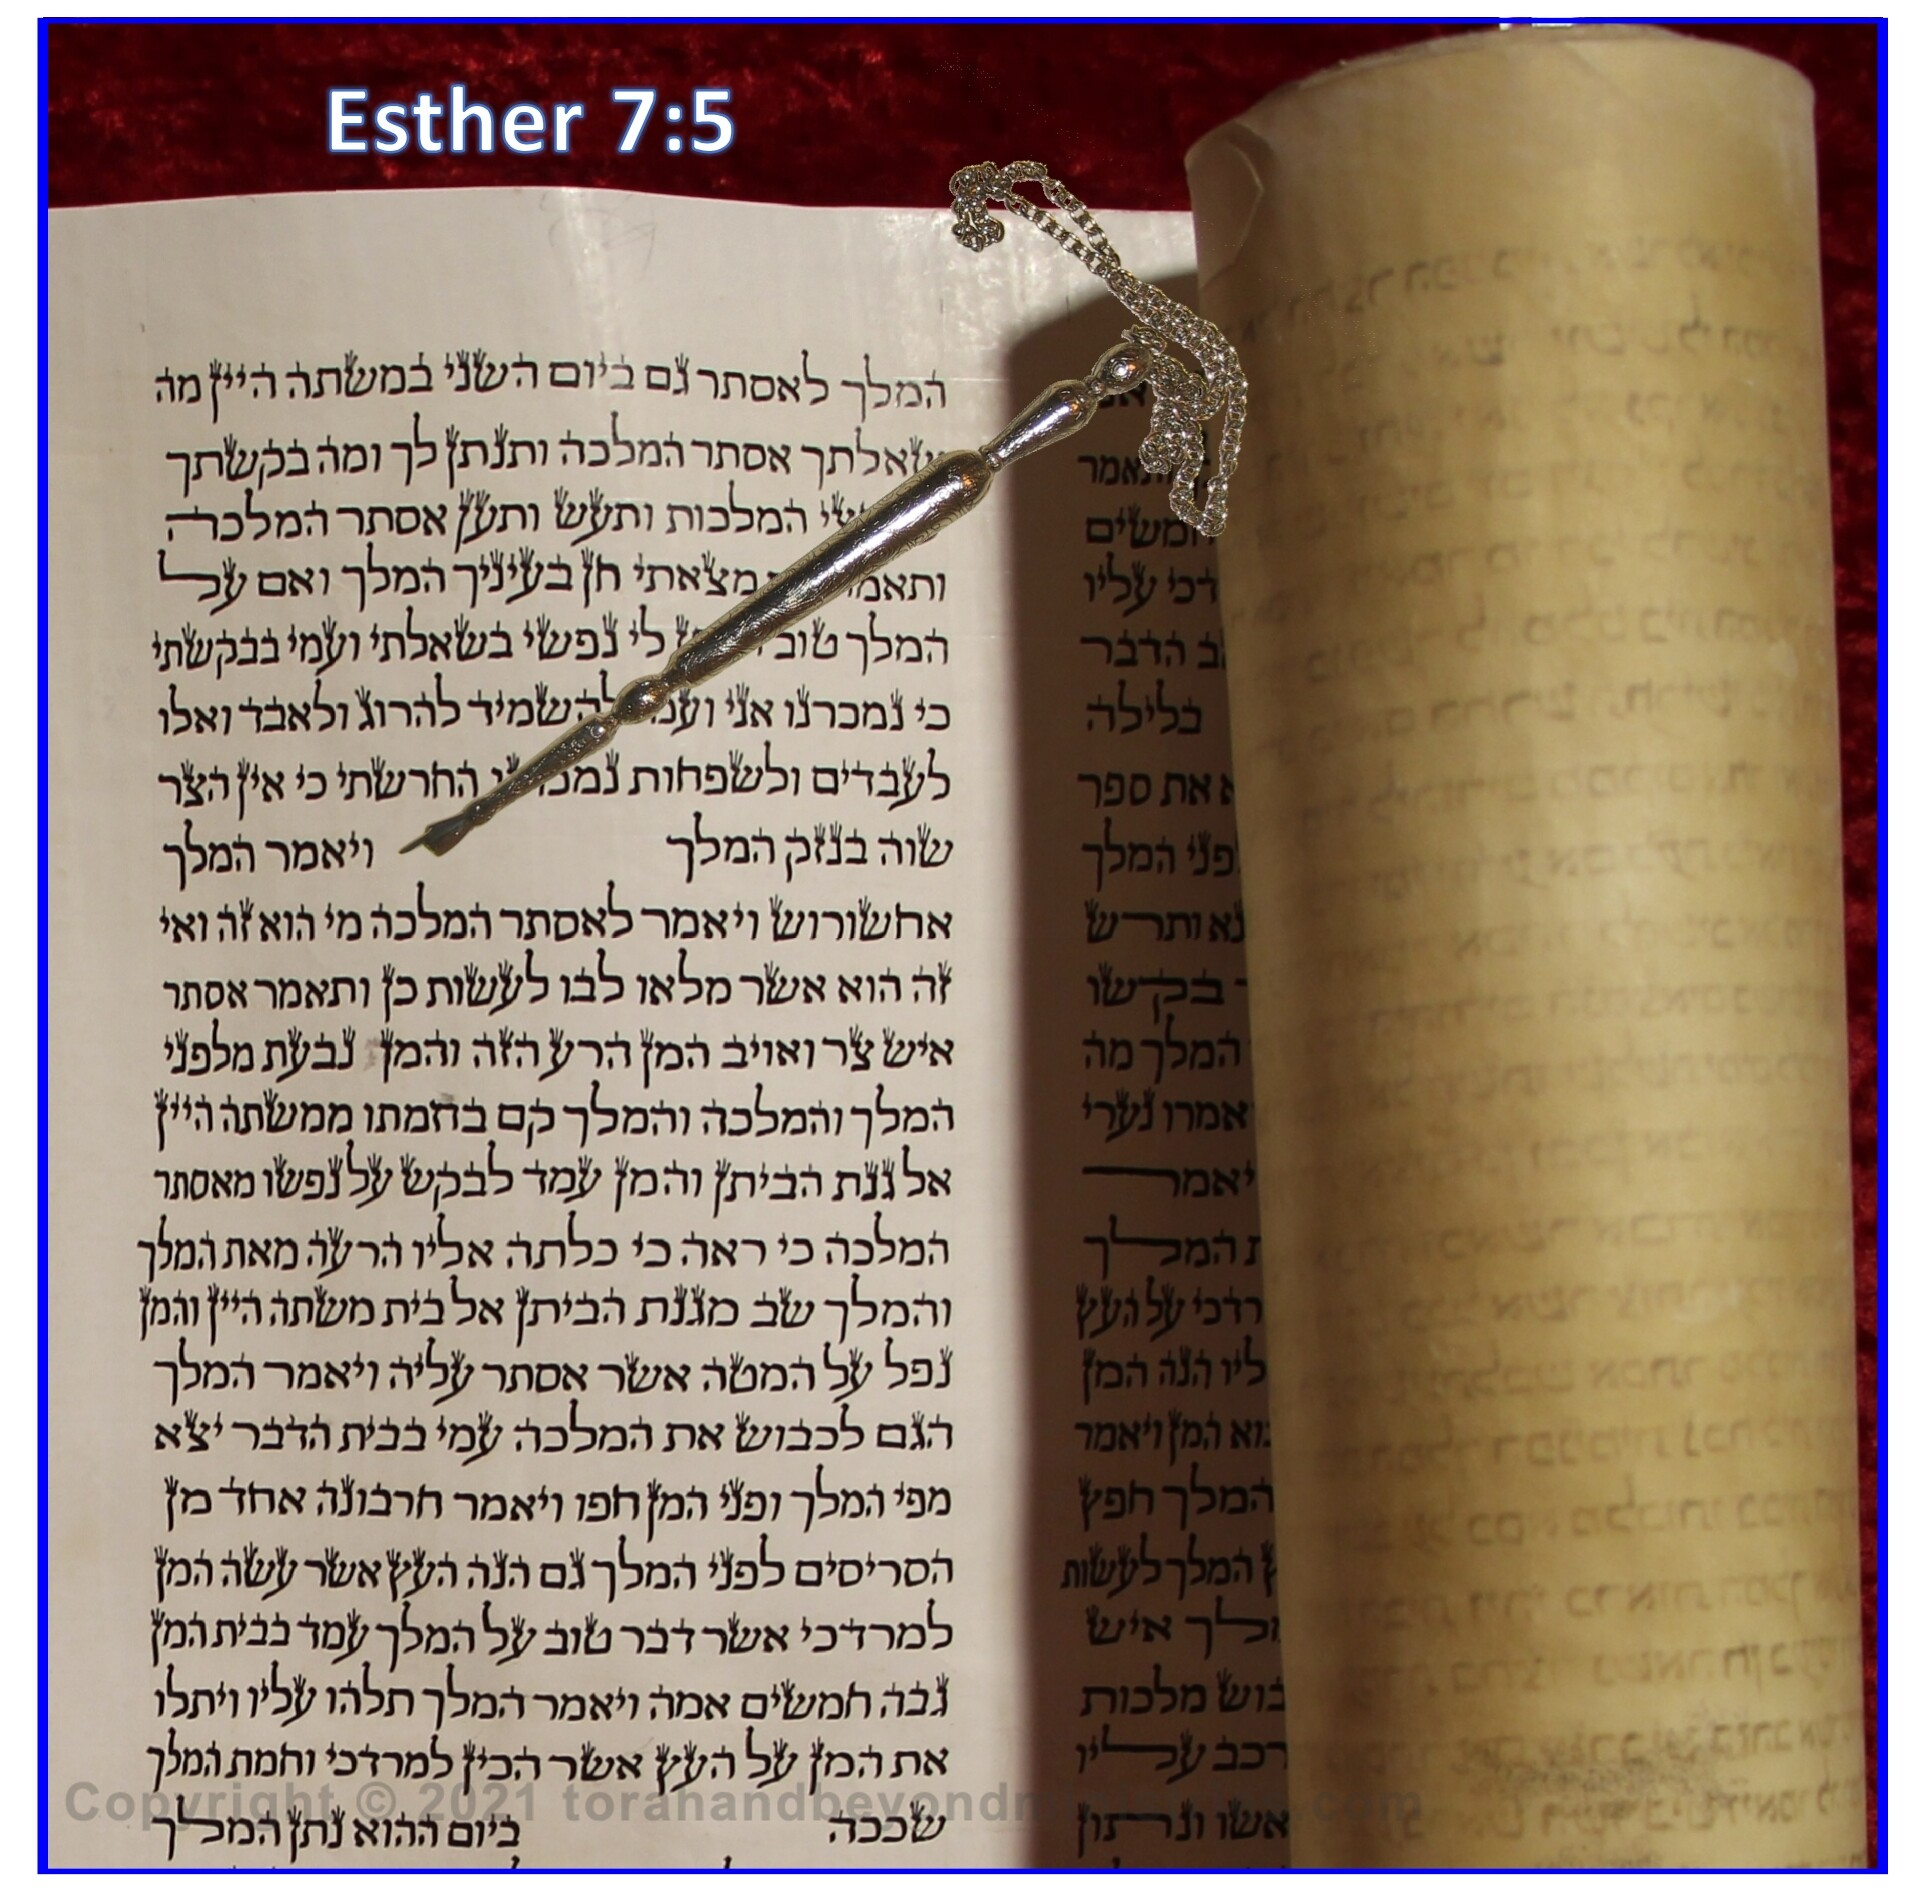 Scroll of Esther showing Esther 7:5